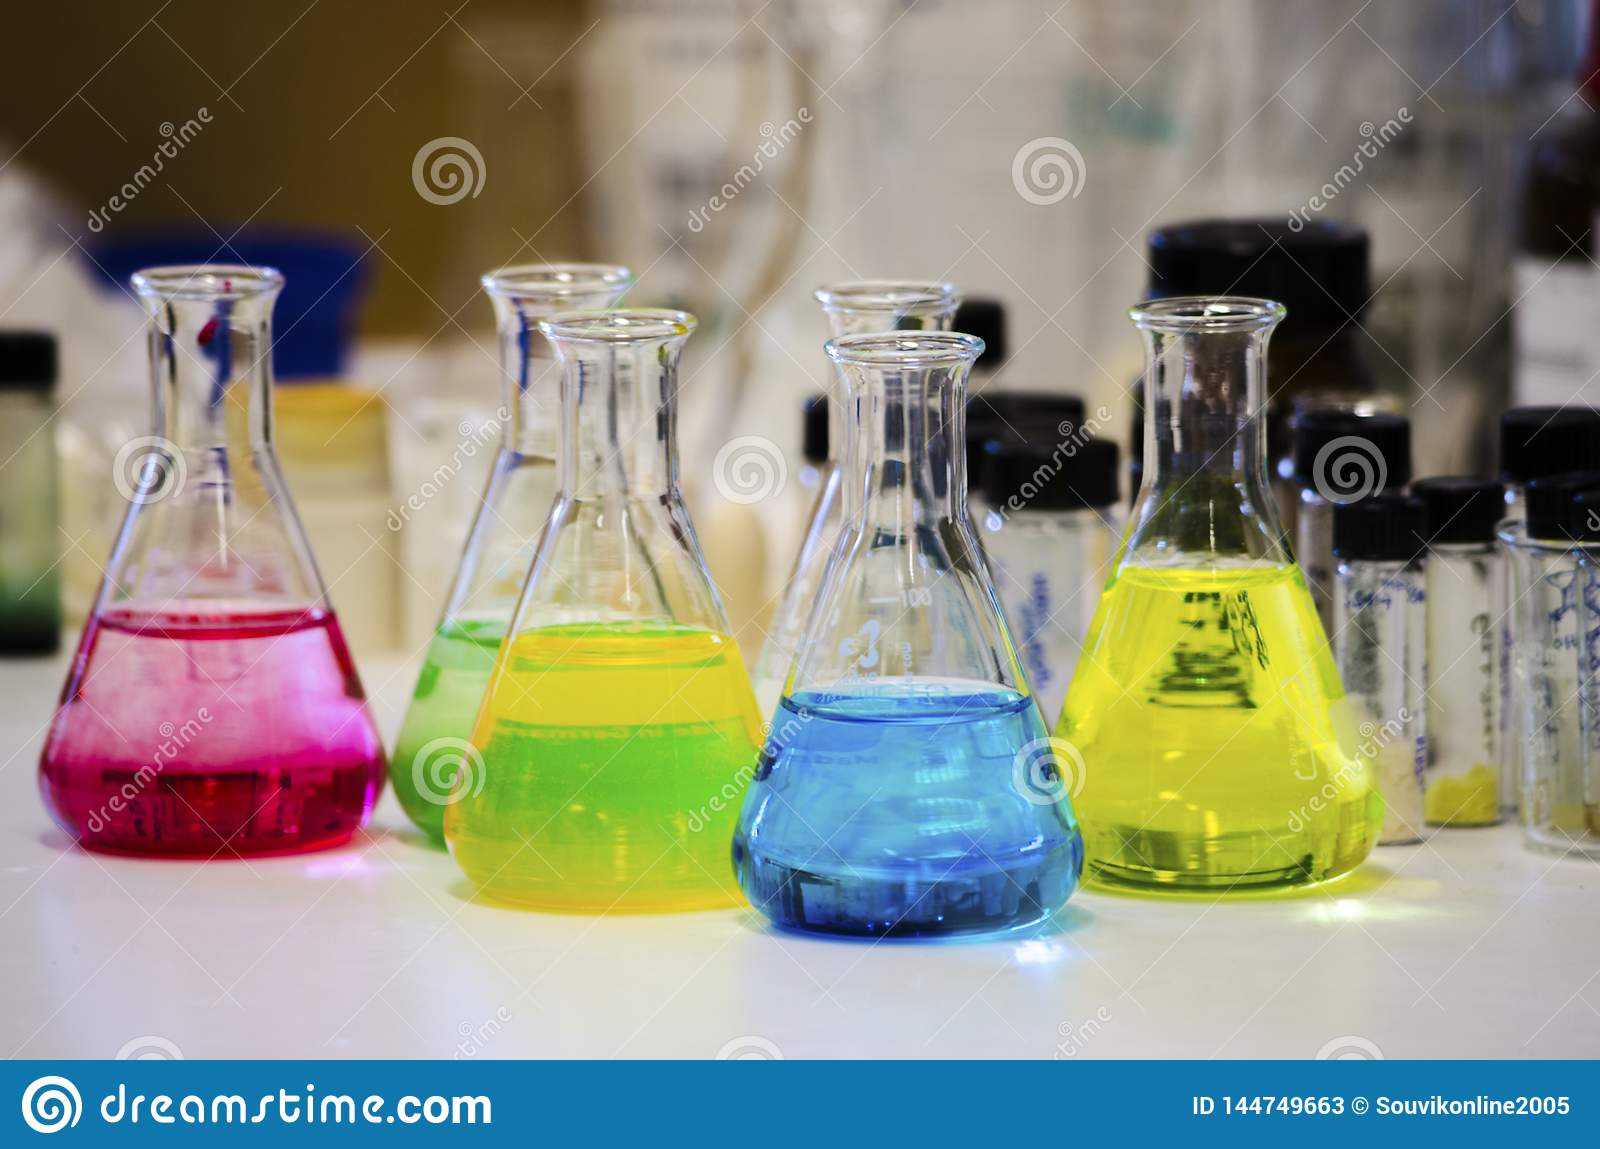 Different Colorful Solution In Conical Flask On A Bench In A Chemistry Lab With Blur Background Organic Chemistry Experiment Stock Image Image Of Focus Decorative 144749663